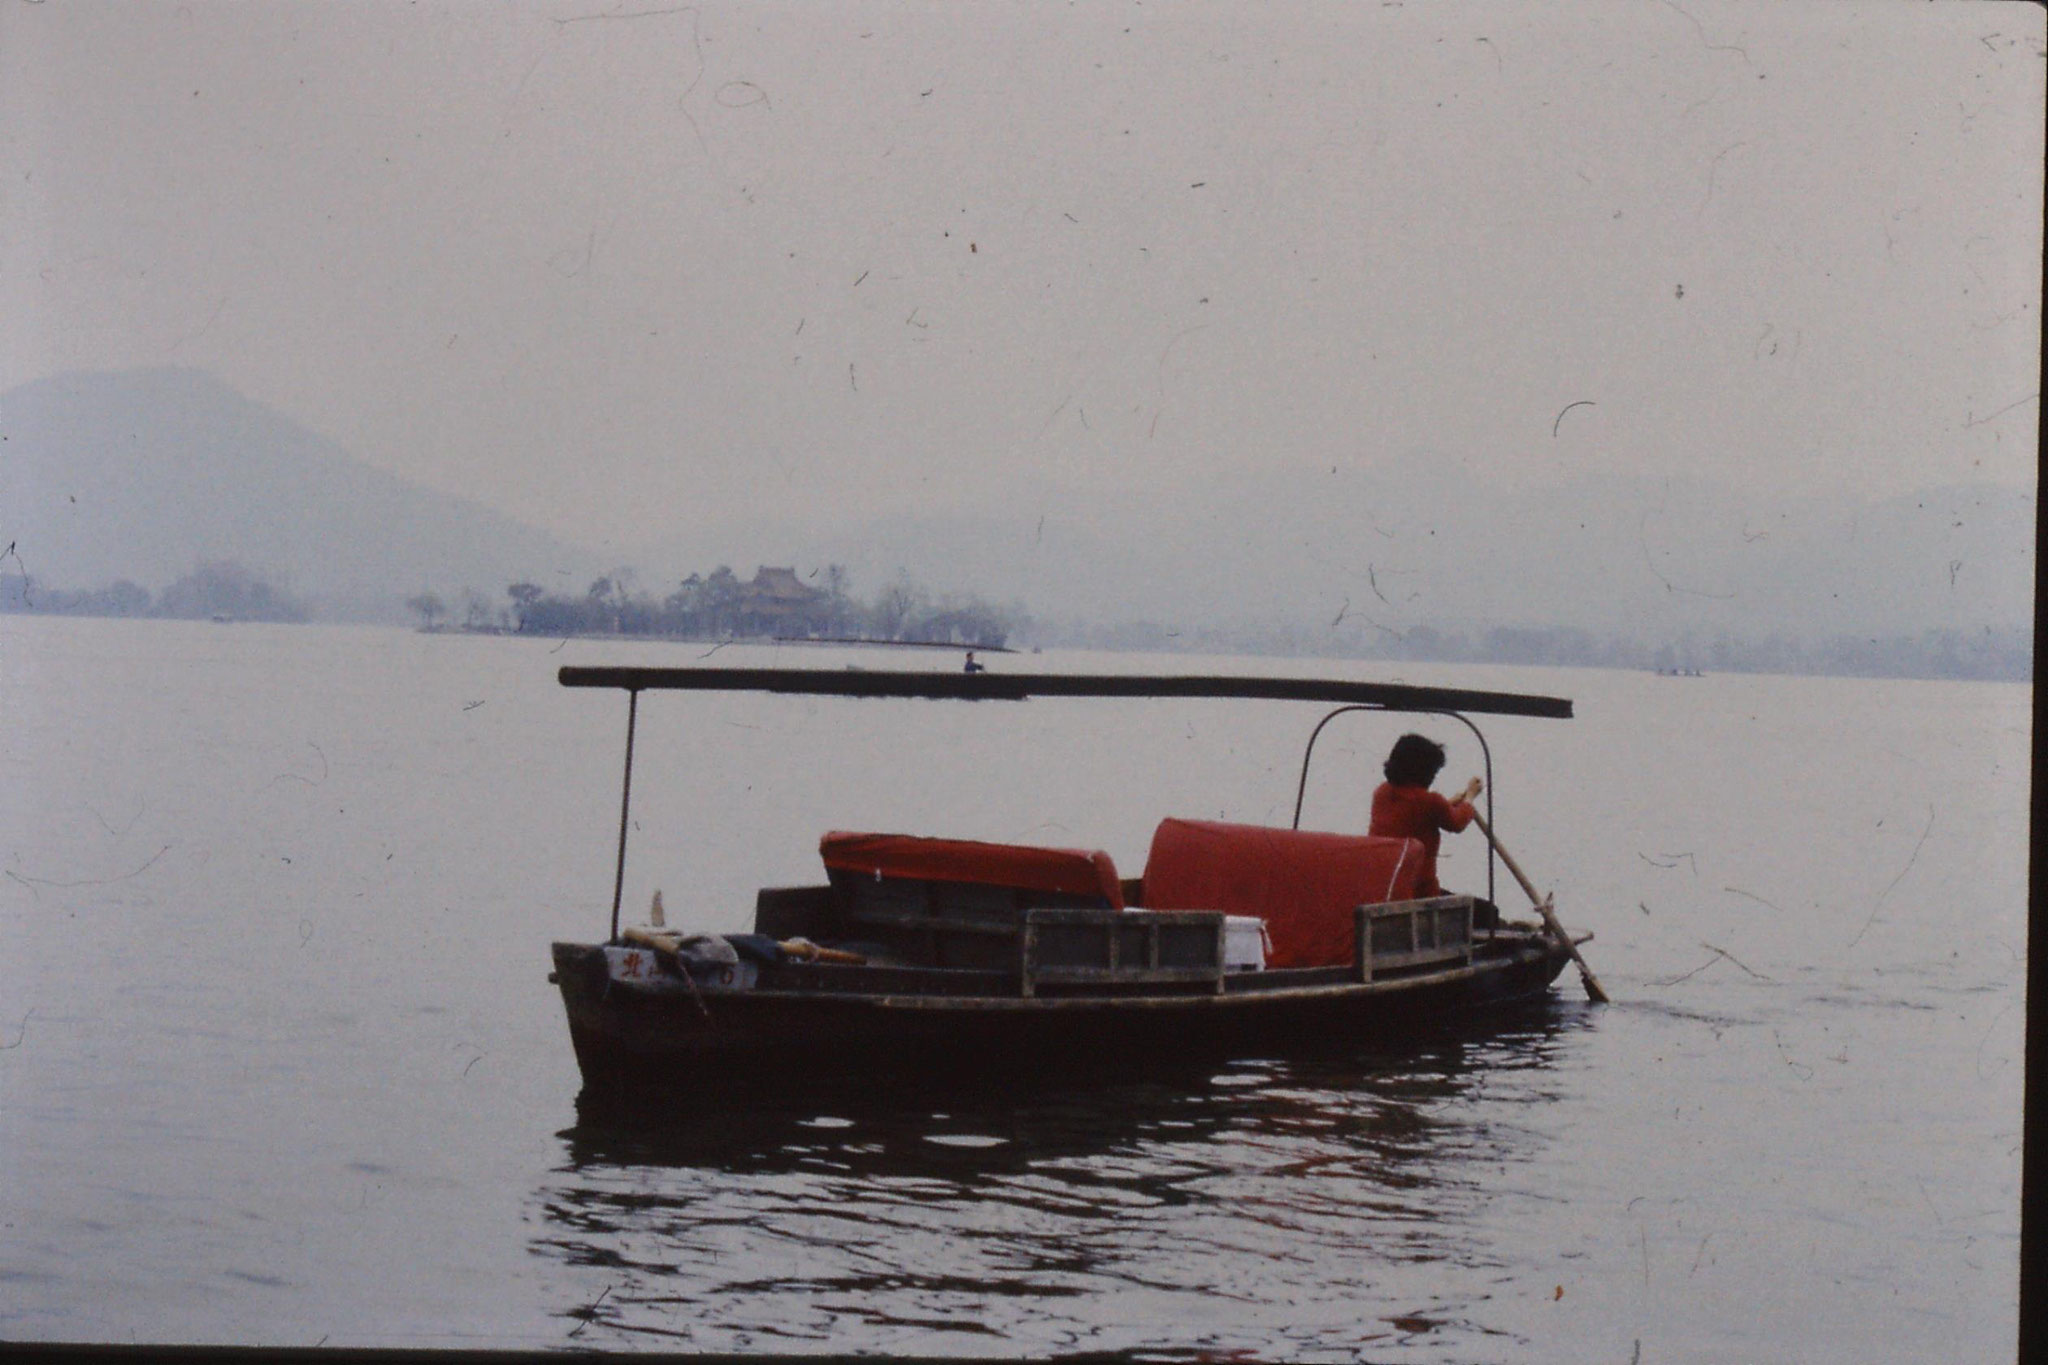 25/3/1989: 13: Hanzhou 'Mid Lake Pavillion Island'